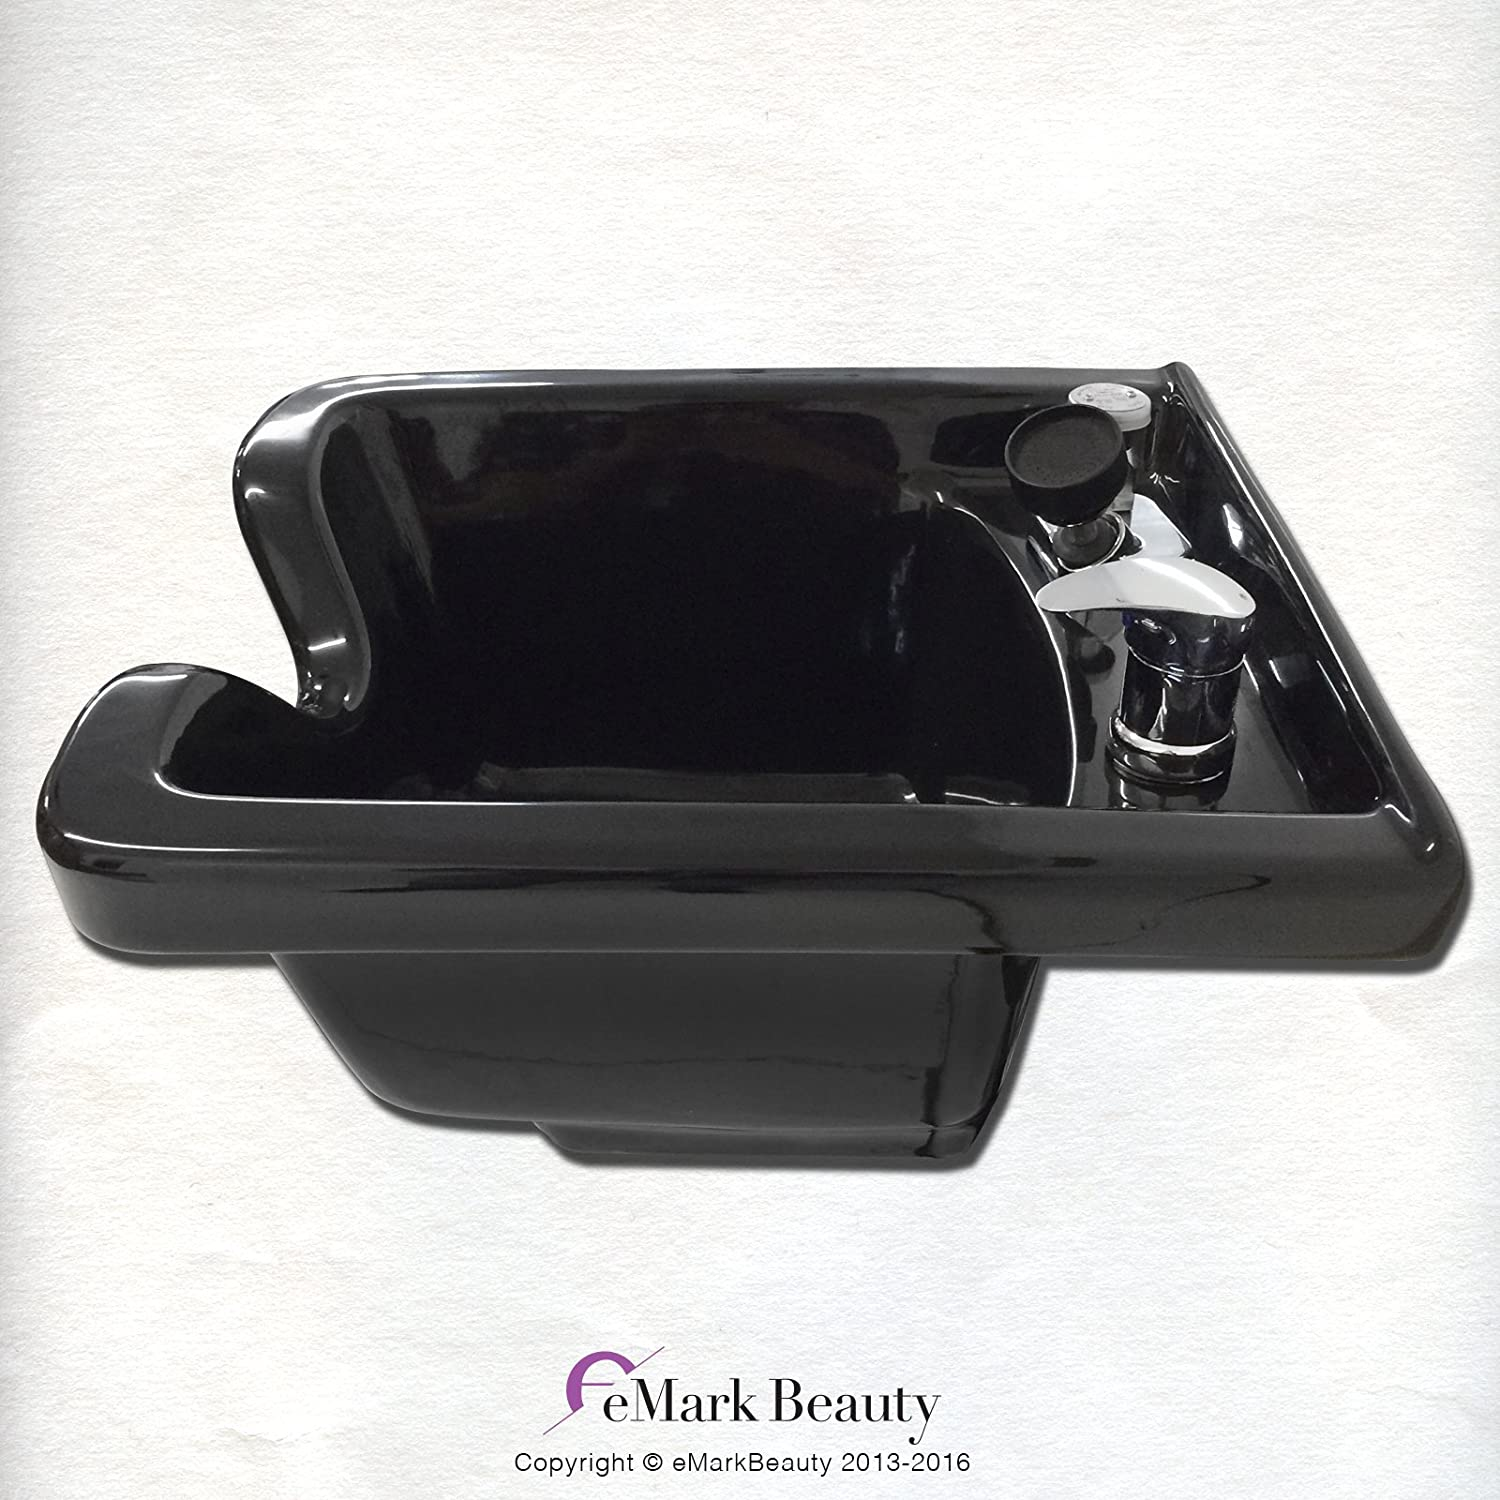 Square Shampoo Bowl Black ABS Plastic Salon and Spa Hair Sink Beauty Salon Equipment TLC-1016 KSGT